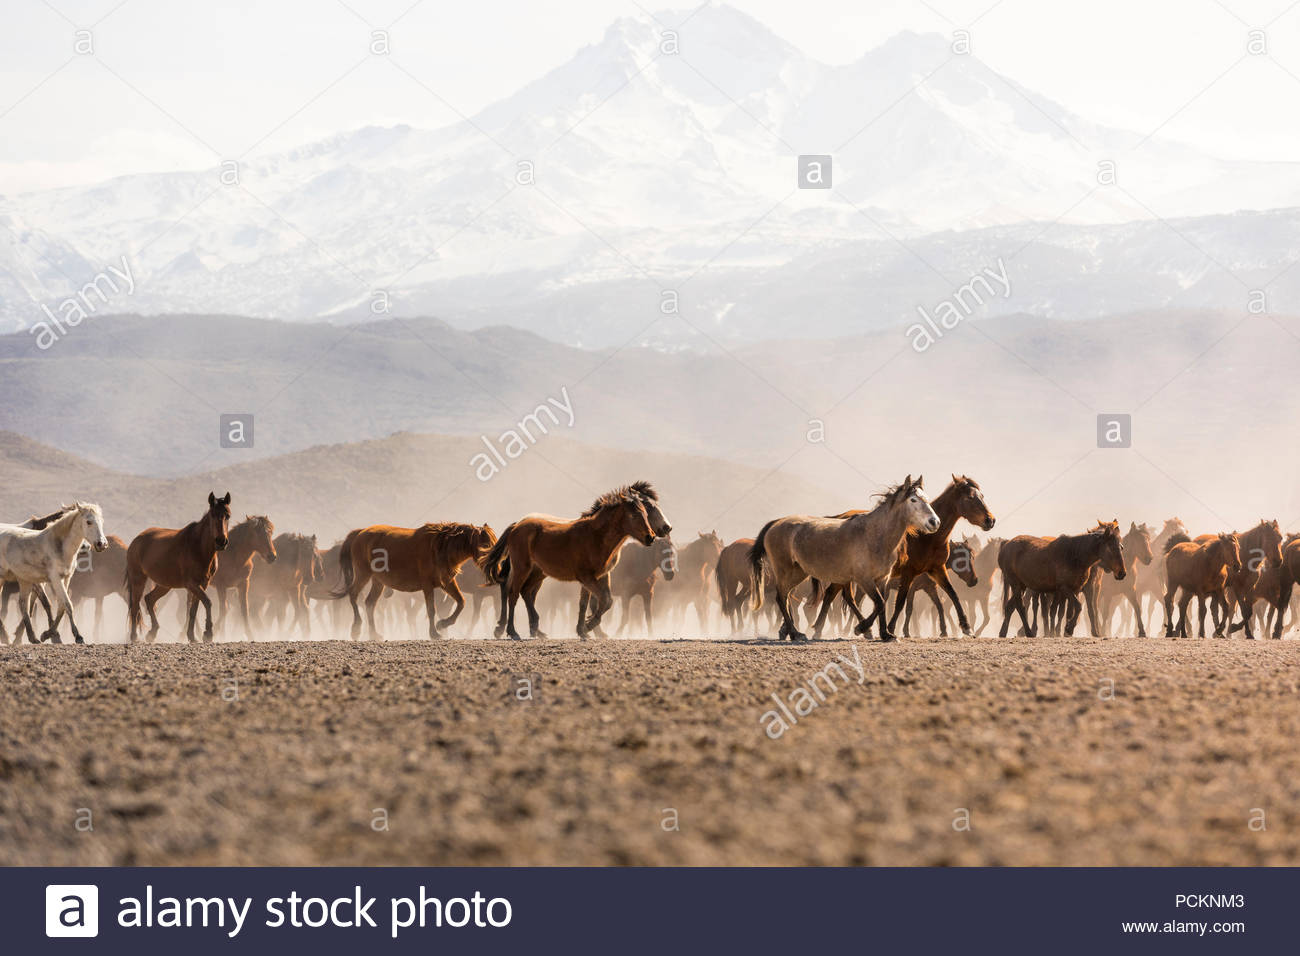 Erciyes mountain (ancient volcanic mountain), close to Cappadocia / Kapadokya region, is home to wild horses also called 'Yilki horses' These horses r - Stock Image